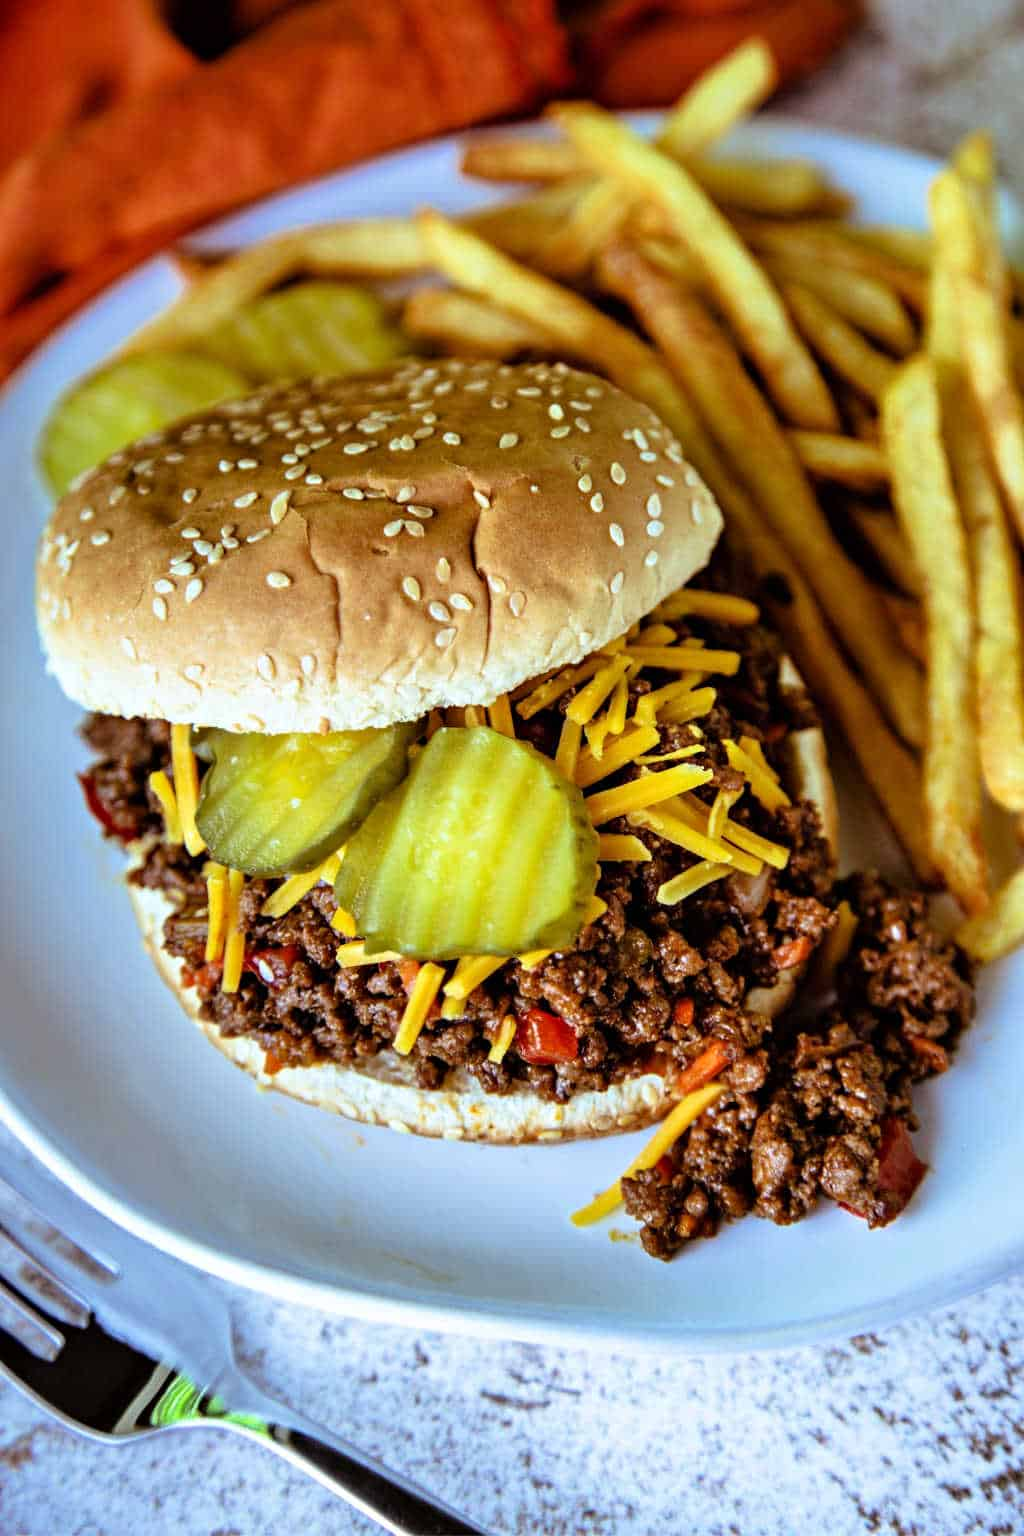 Sloppy Joe Sandwich on a white plate with french fries and topped with cheddar cheese and dill pickles